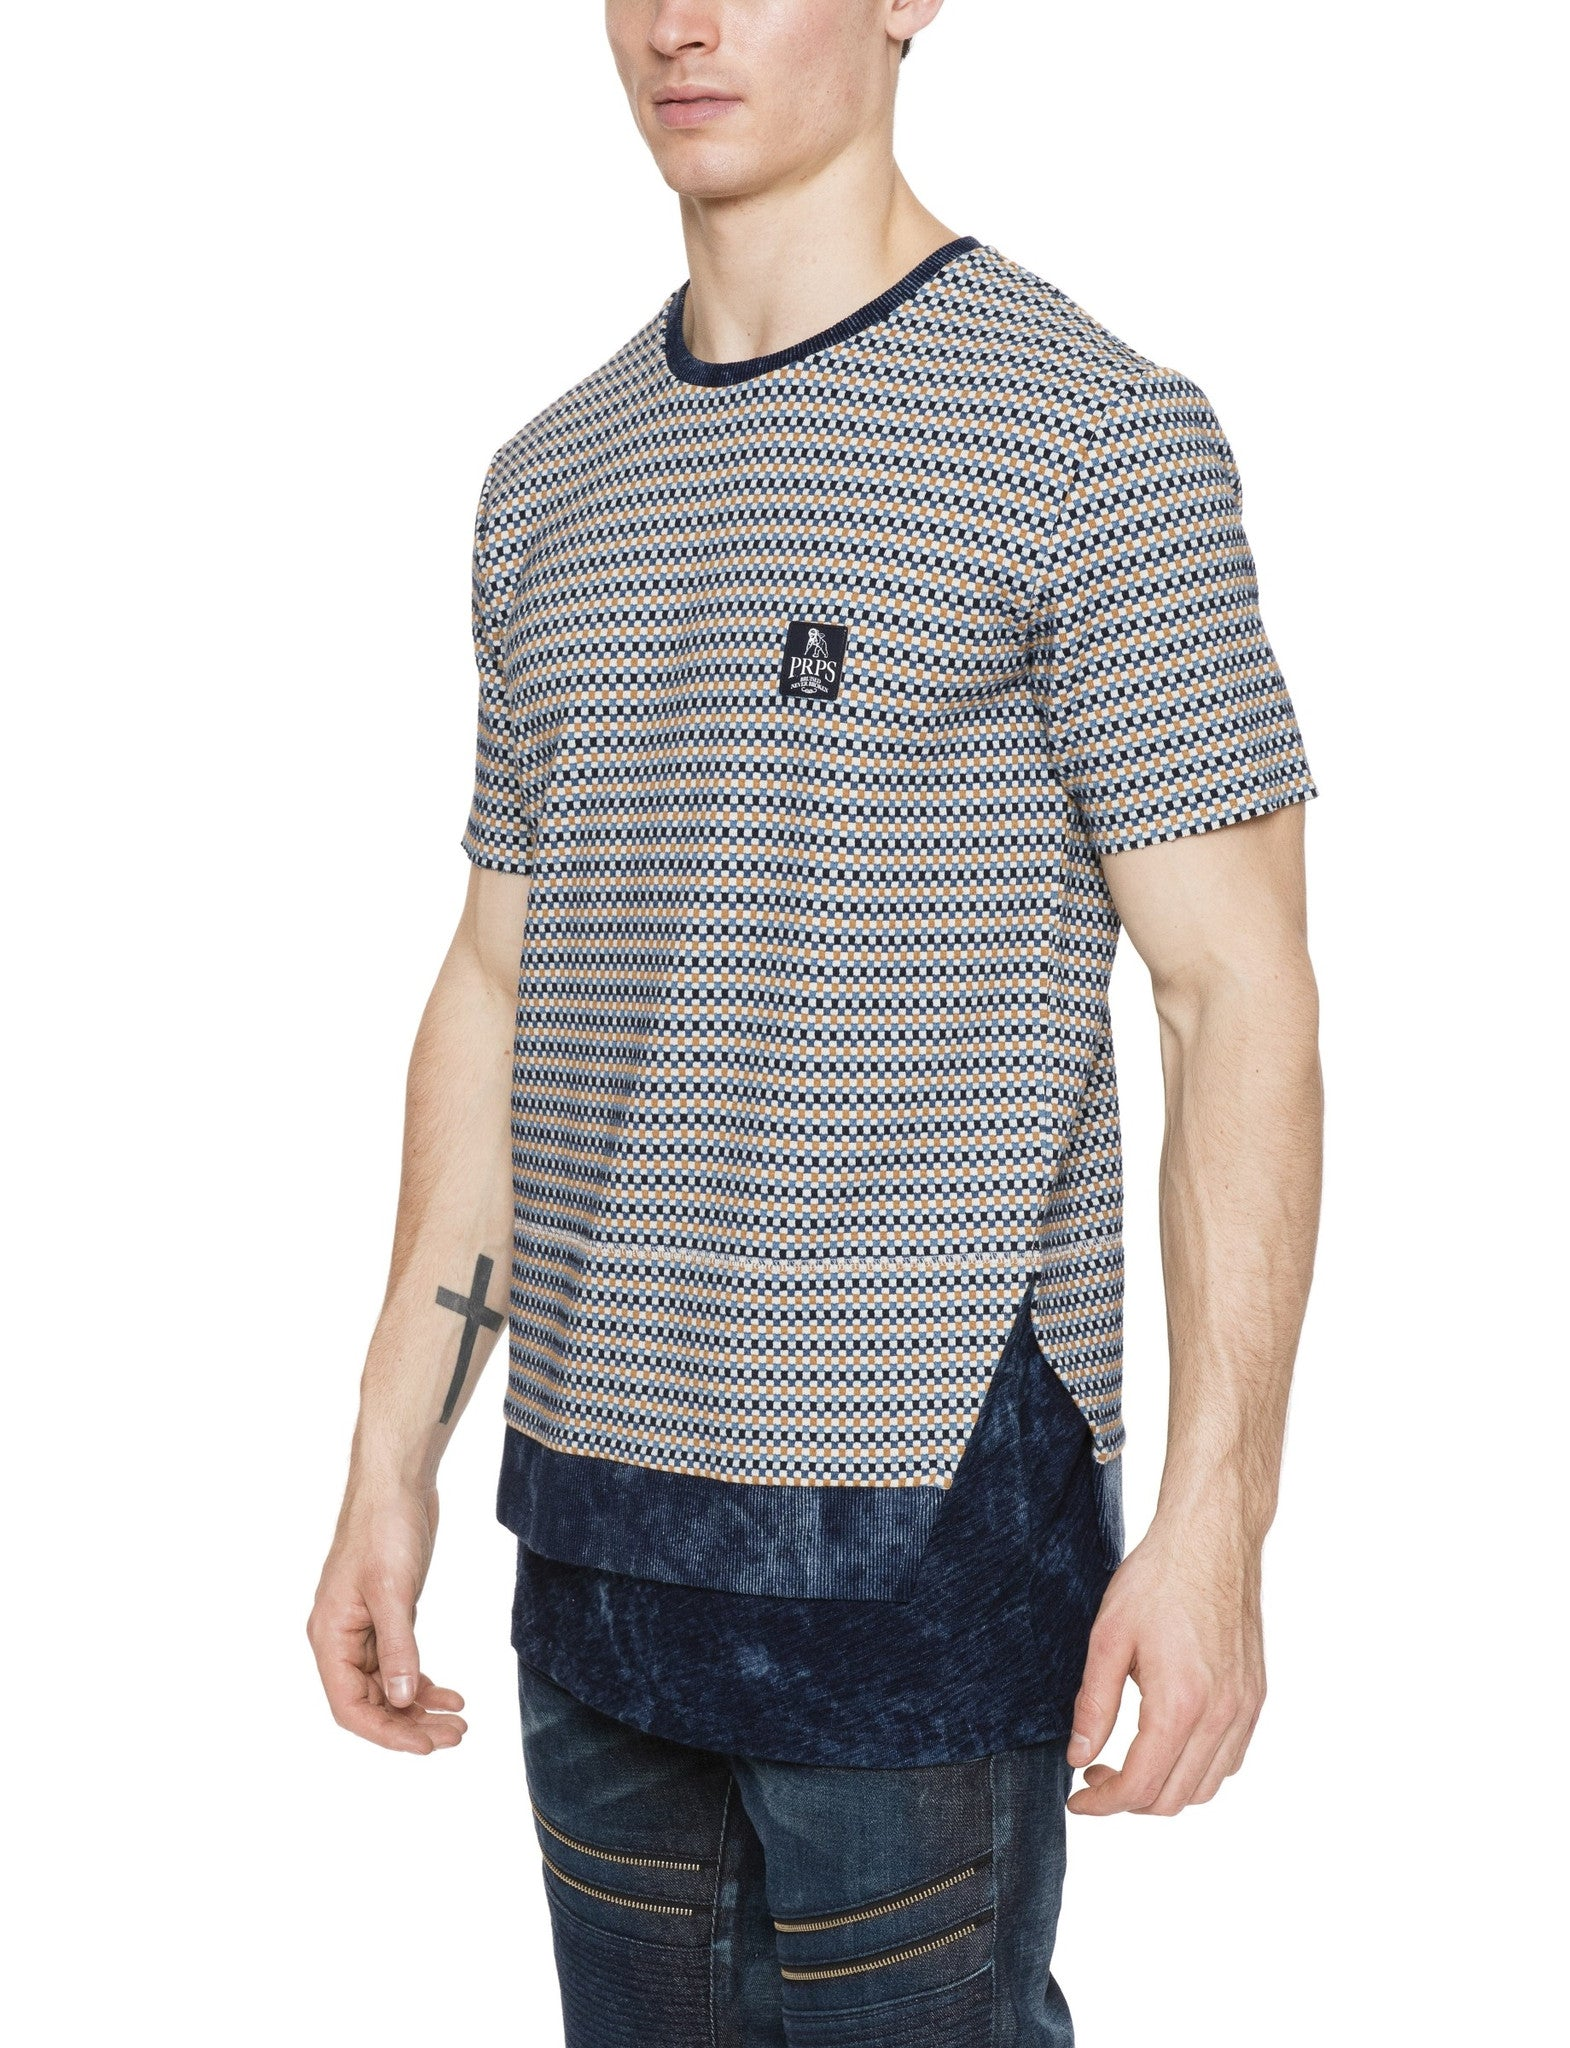 Interwoven Knit Tee